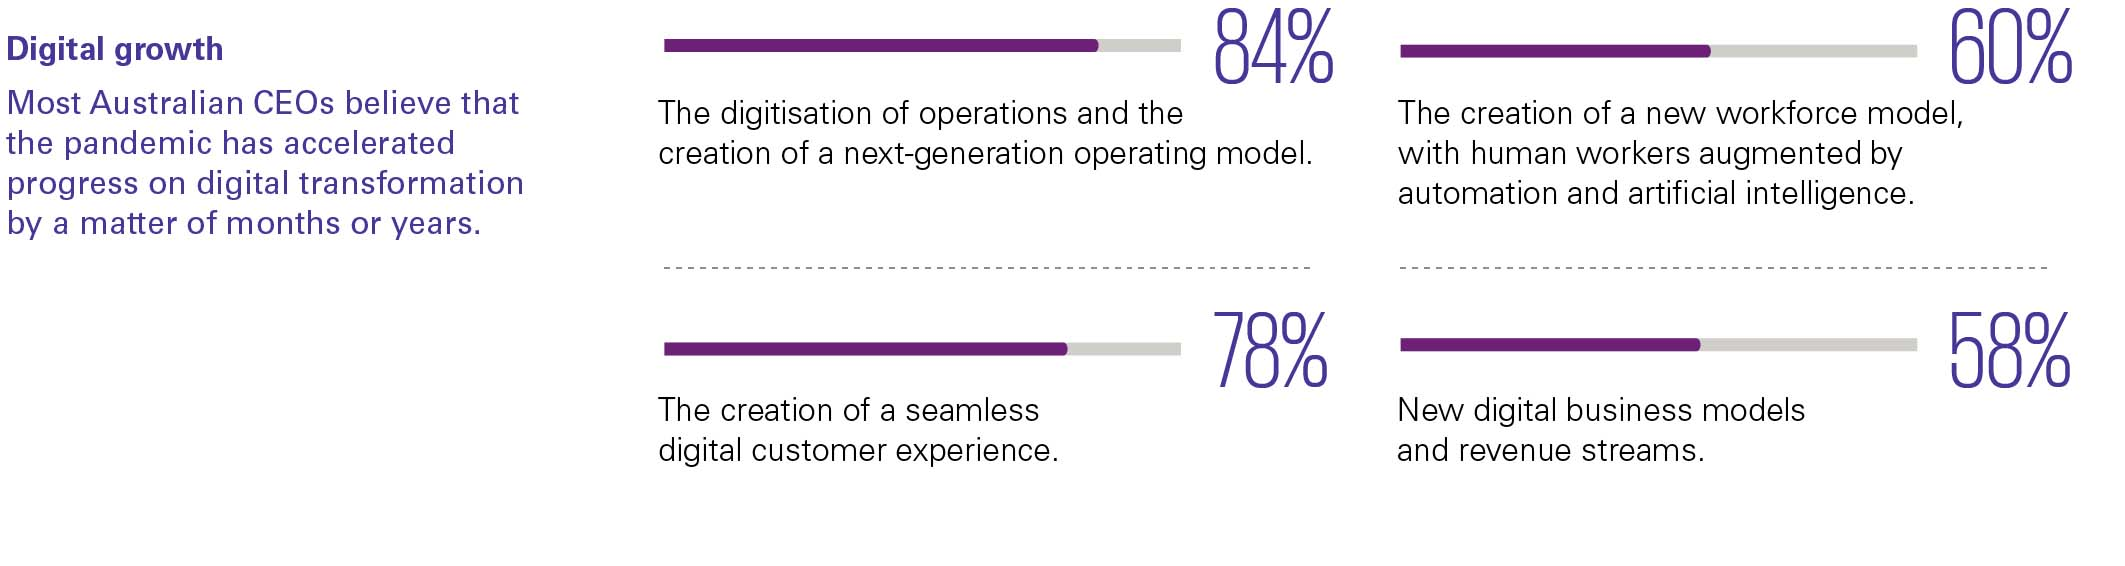 Global CEO Outlook 2020: Digital acceleration infographic